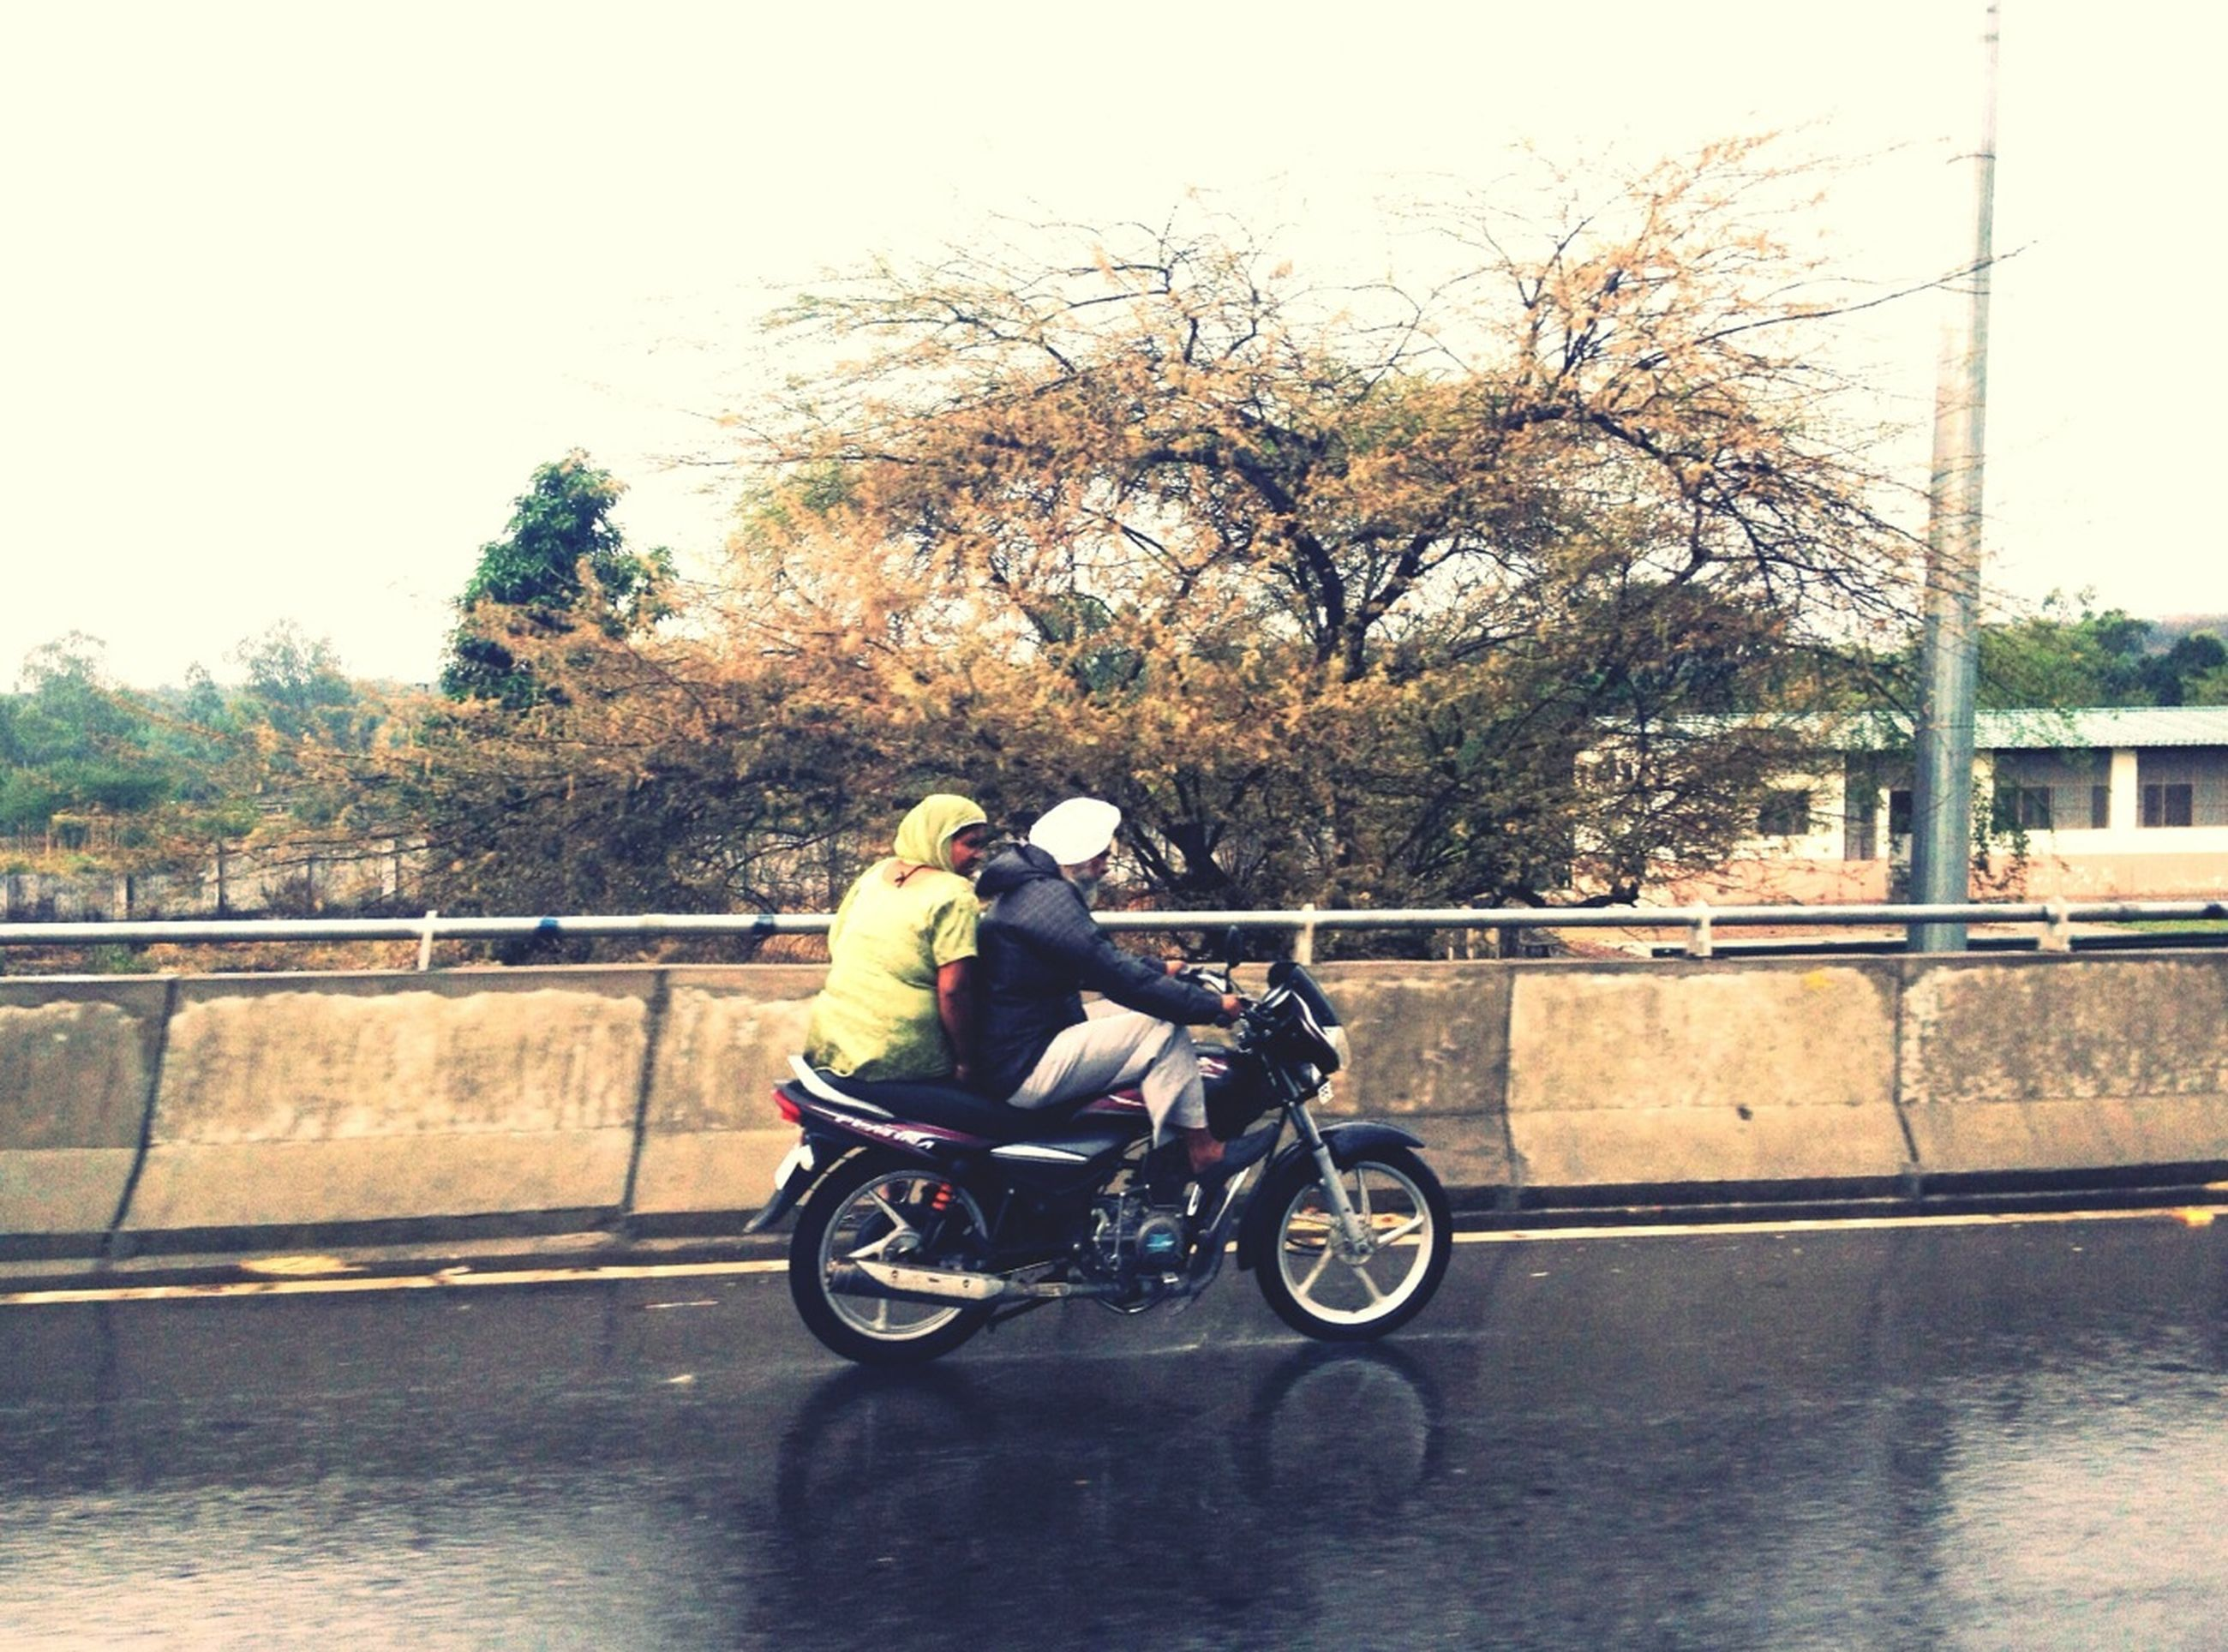 transportation, bicycle, land vehicle, mode of transport, lifestyles, riding, men, leisure activity, full length, tree, casual clothing, cycling, street, rear view, stationary, parked, motorcycle